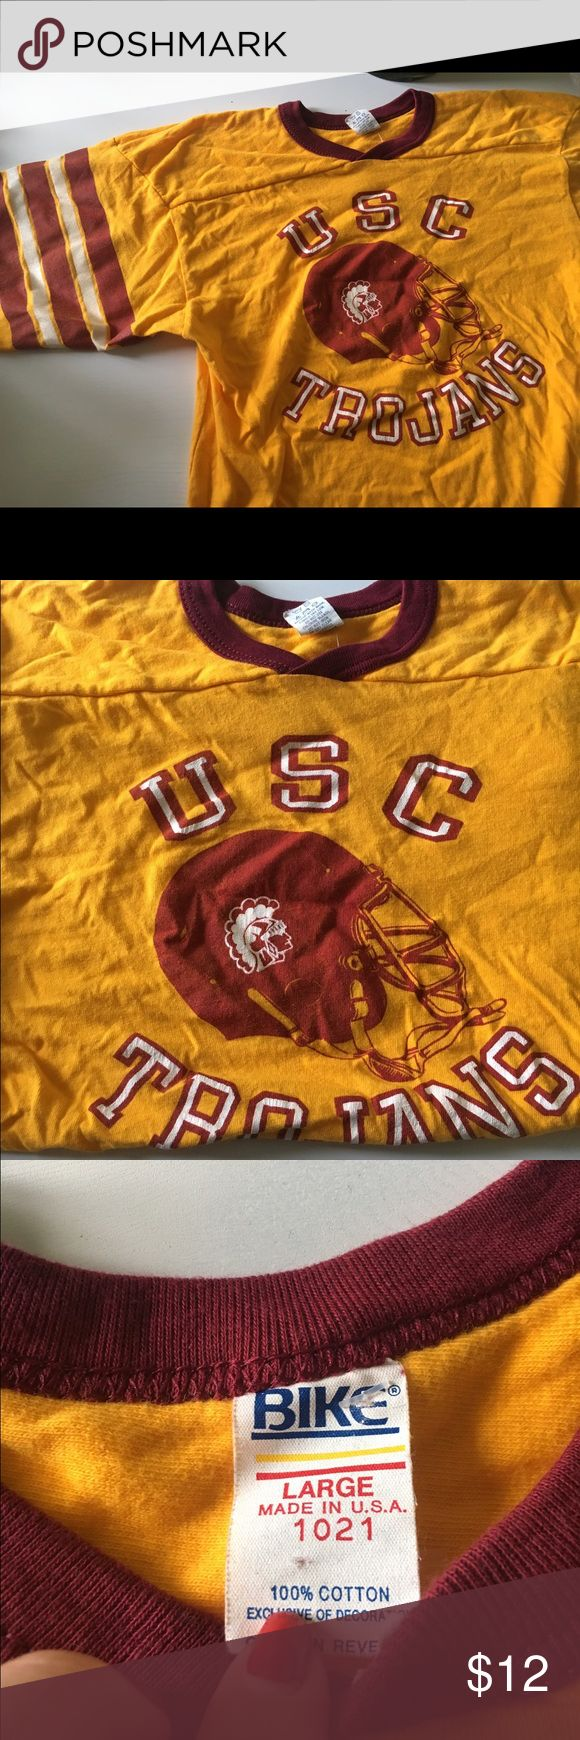 Vintage USC Trojans shirt University Southern CA Vintage USC shirt I picked up at a thrift shop in Los Angeles. Cardinal and gold colors, men's size L. Fight on! Shirts Tees - Short Sleeve